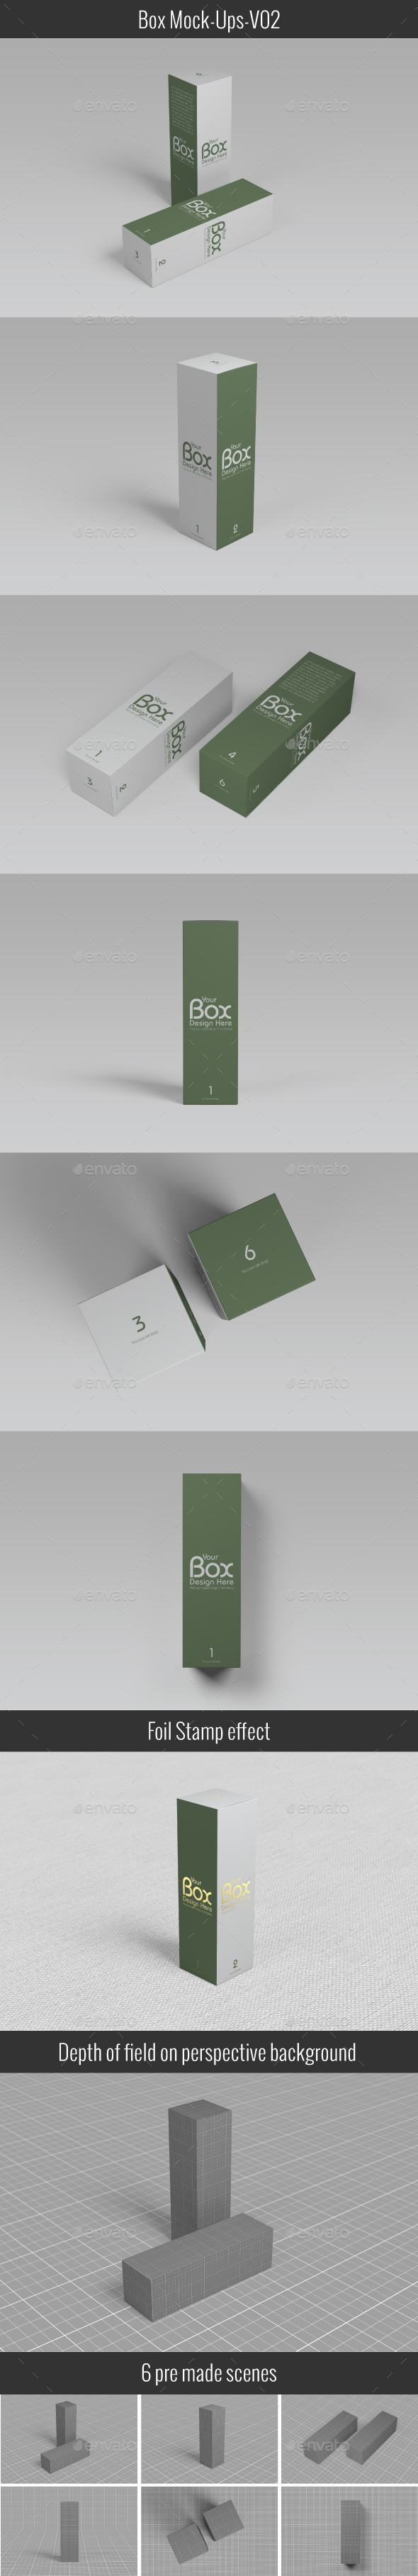 Package Box Mockups V-02